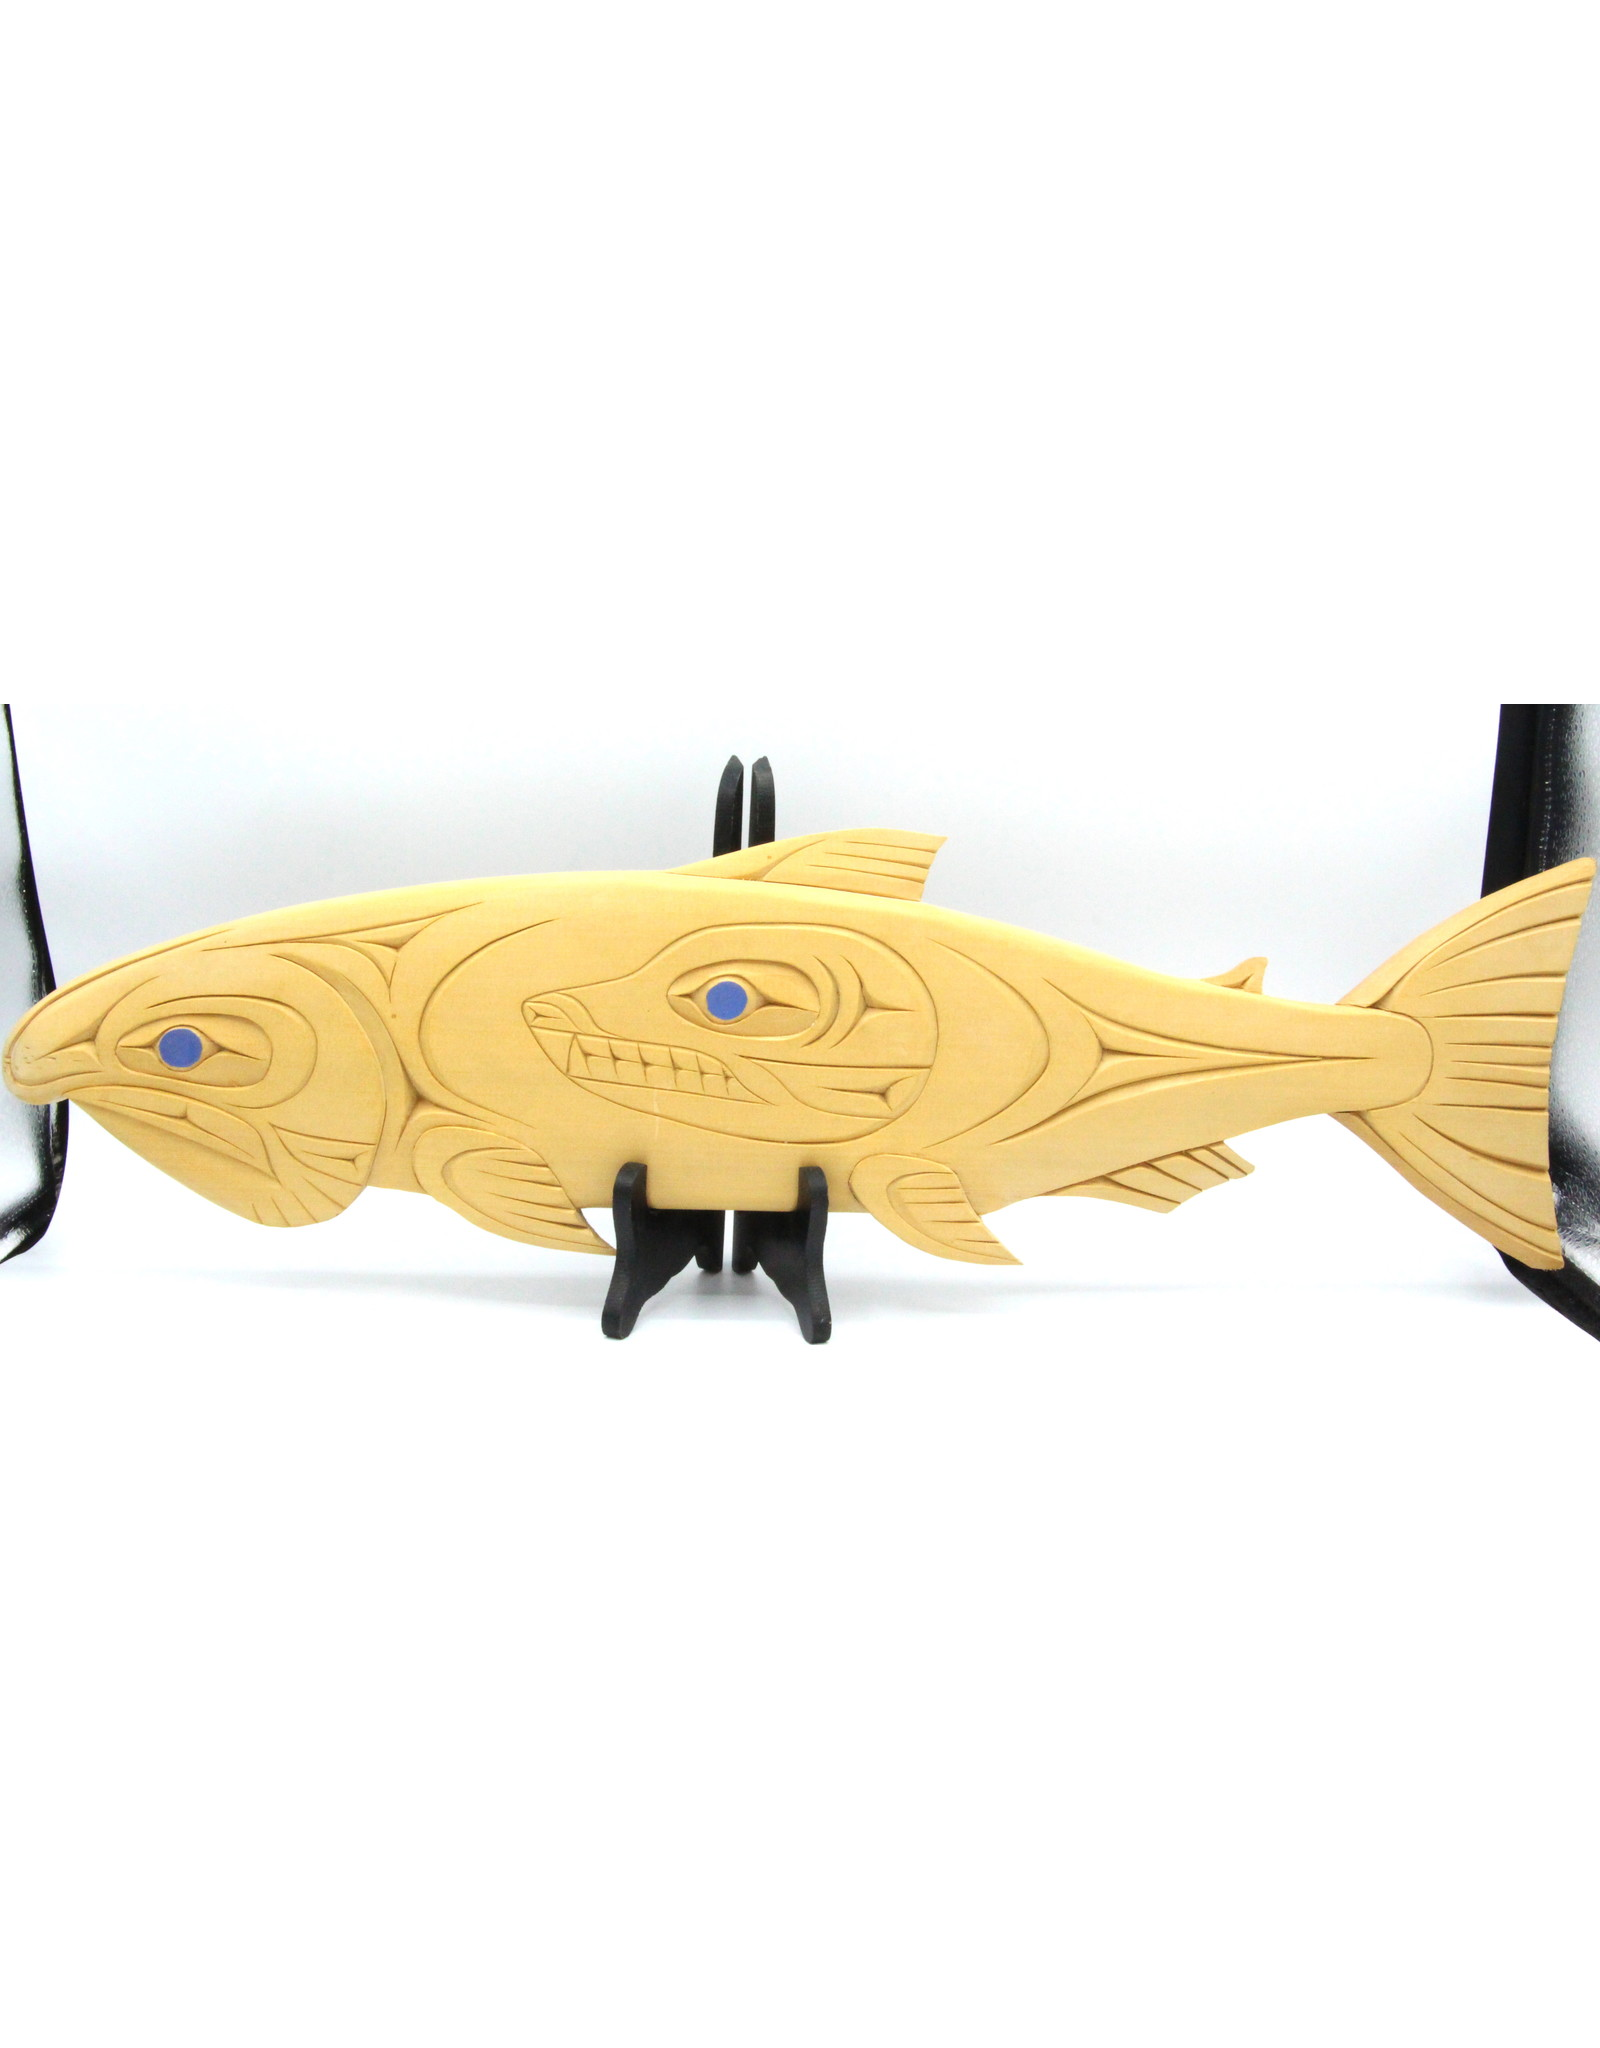 59951 - Salmon Plaque by T. Sparrow